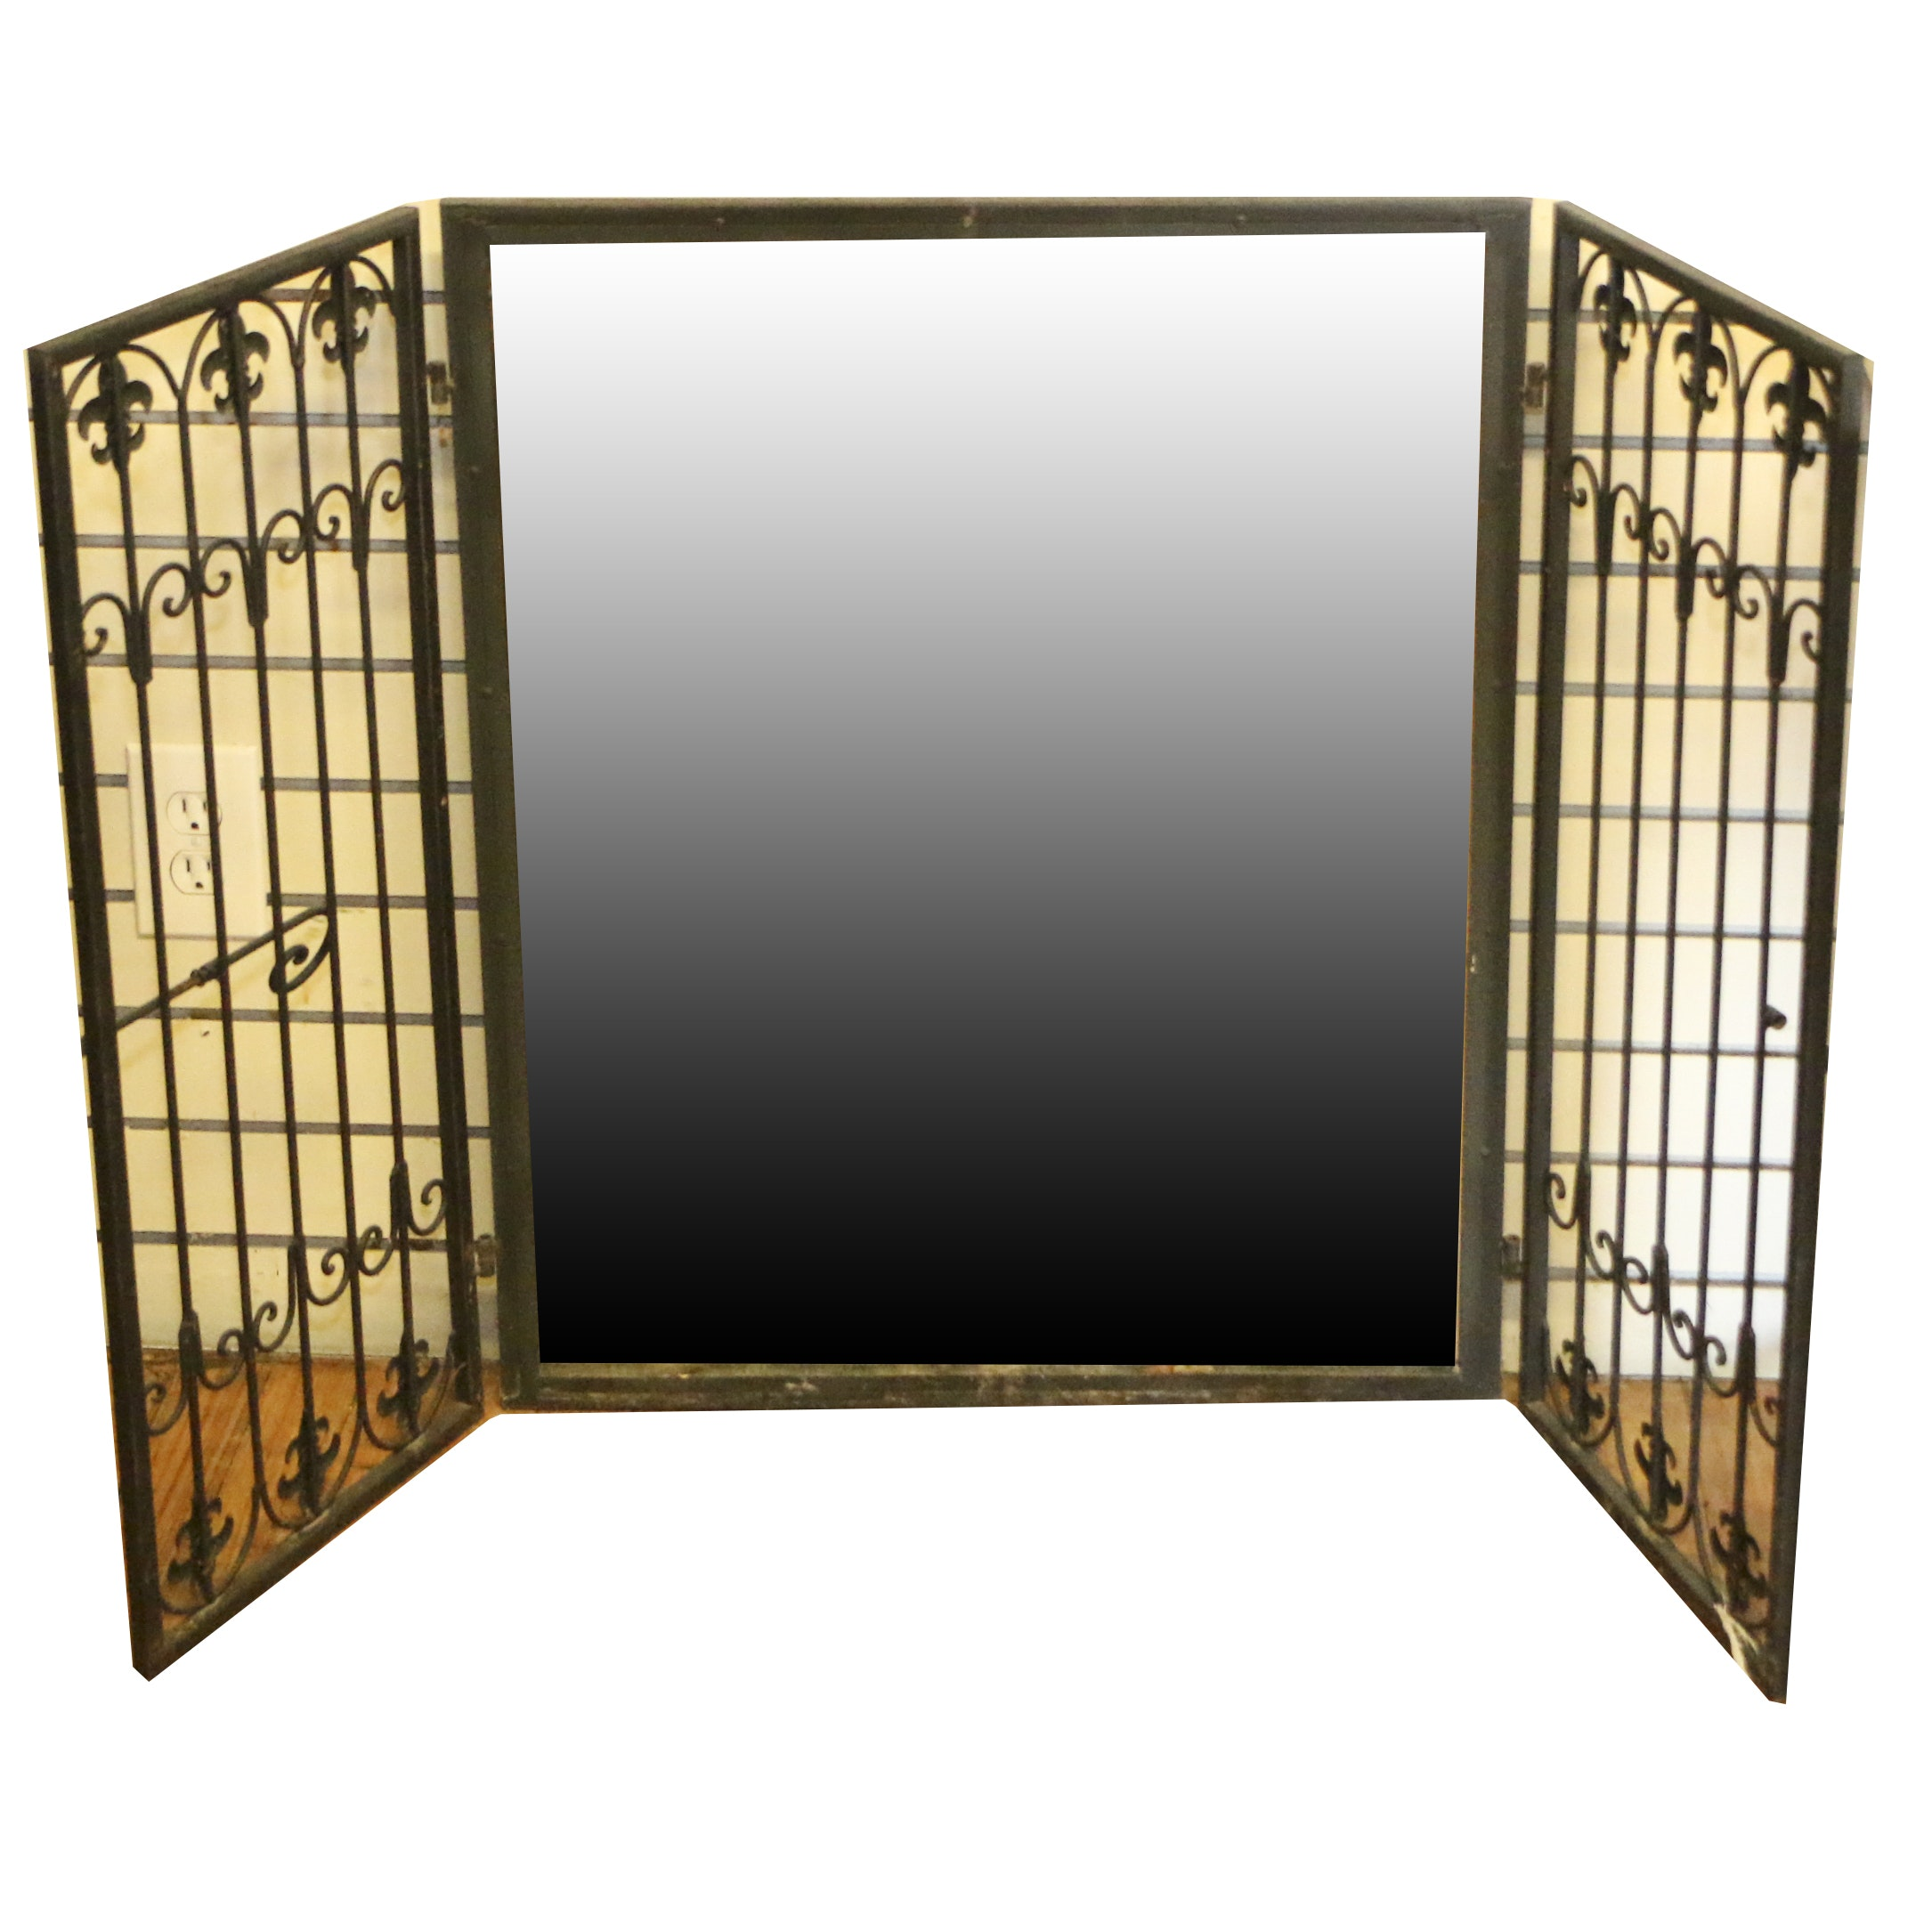 Shuttered Wrought Iron Wall Hanging Mirror